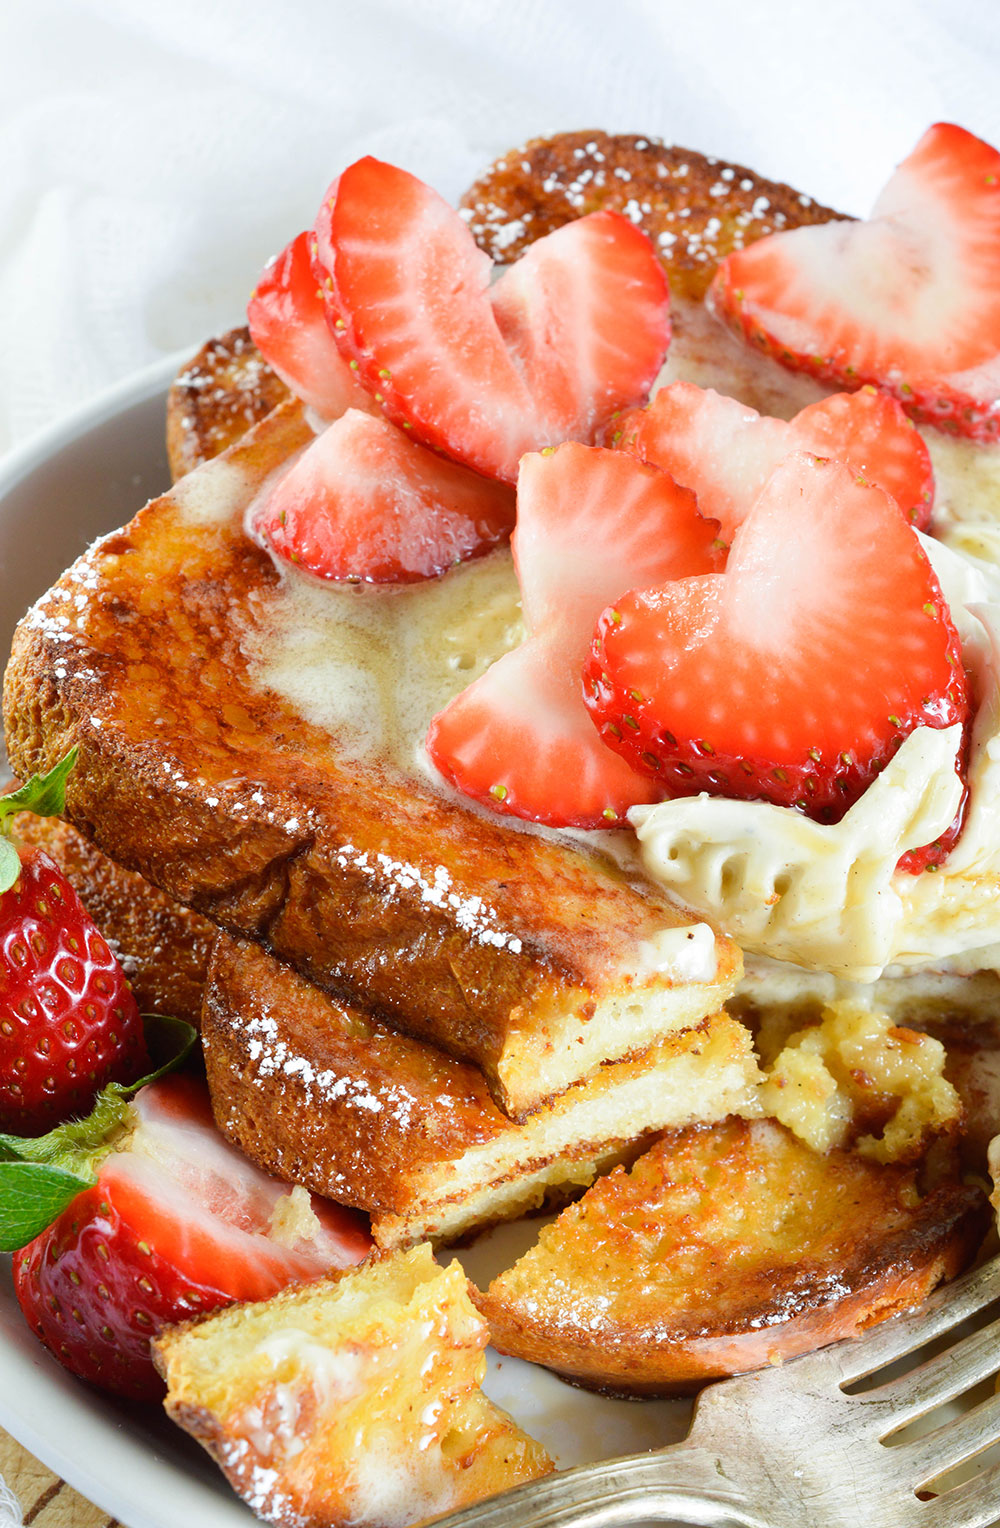 Start Your Day In The Best Possible Way With This Easy Baked French Toast  Recipe! Oven Baked French Toast Topped With Vanilla Mascarpone, Maple Syrup  And